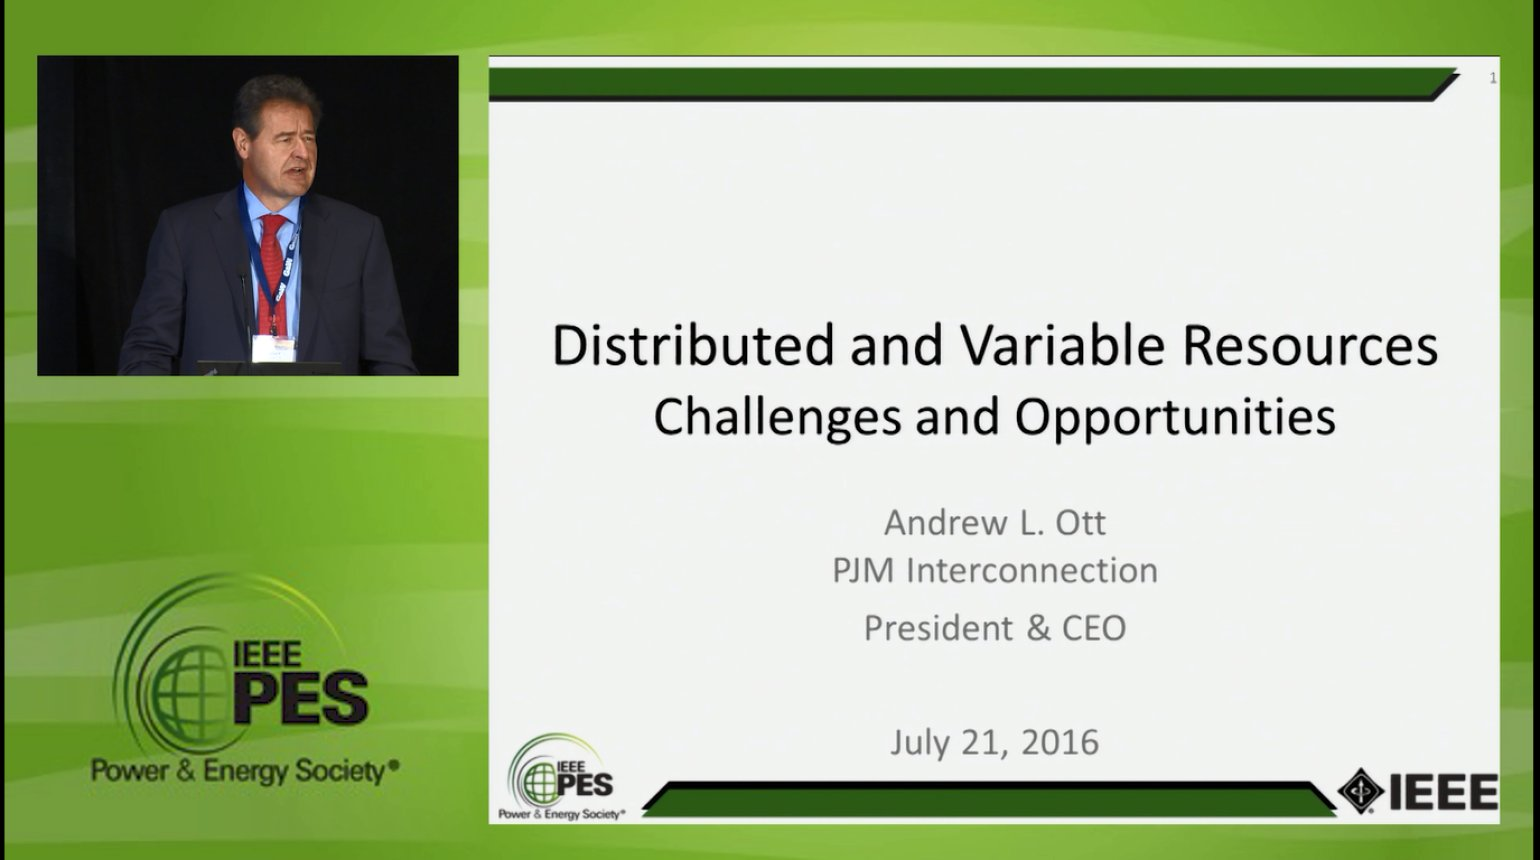 Business Models for Electricity Market - Distributed and Variable Resources Challenges and Opportunities (Video)